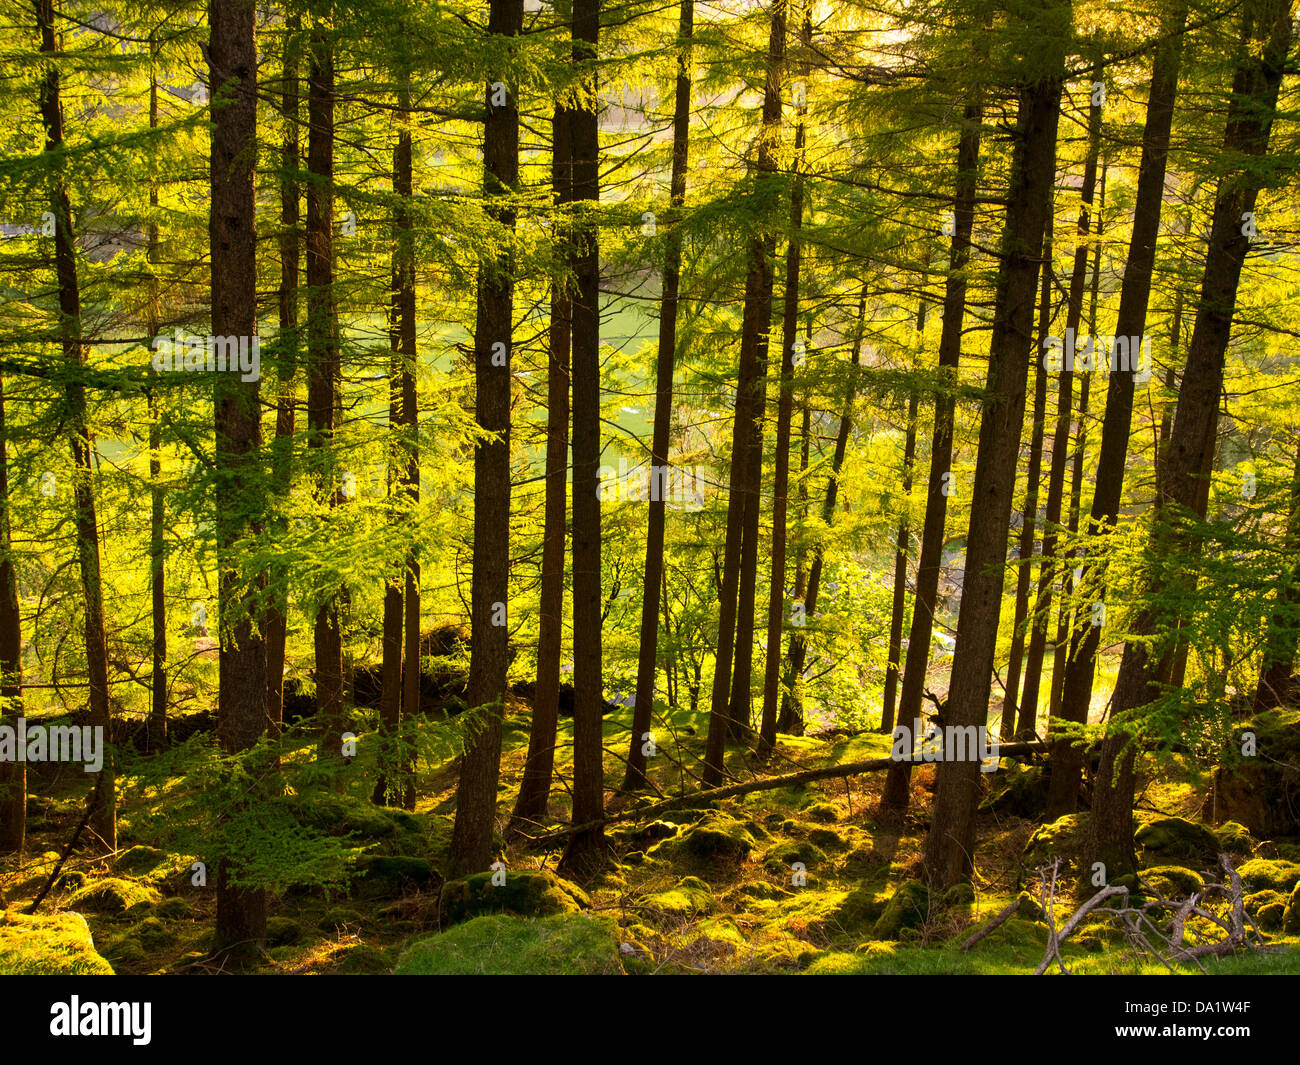 A conifer plantation in St Johns in the Vale near Keswick, Lake District, UK, at sunset. - Stock Image